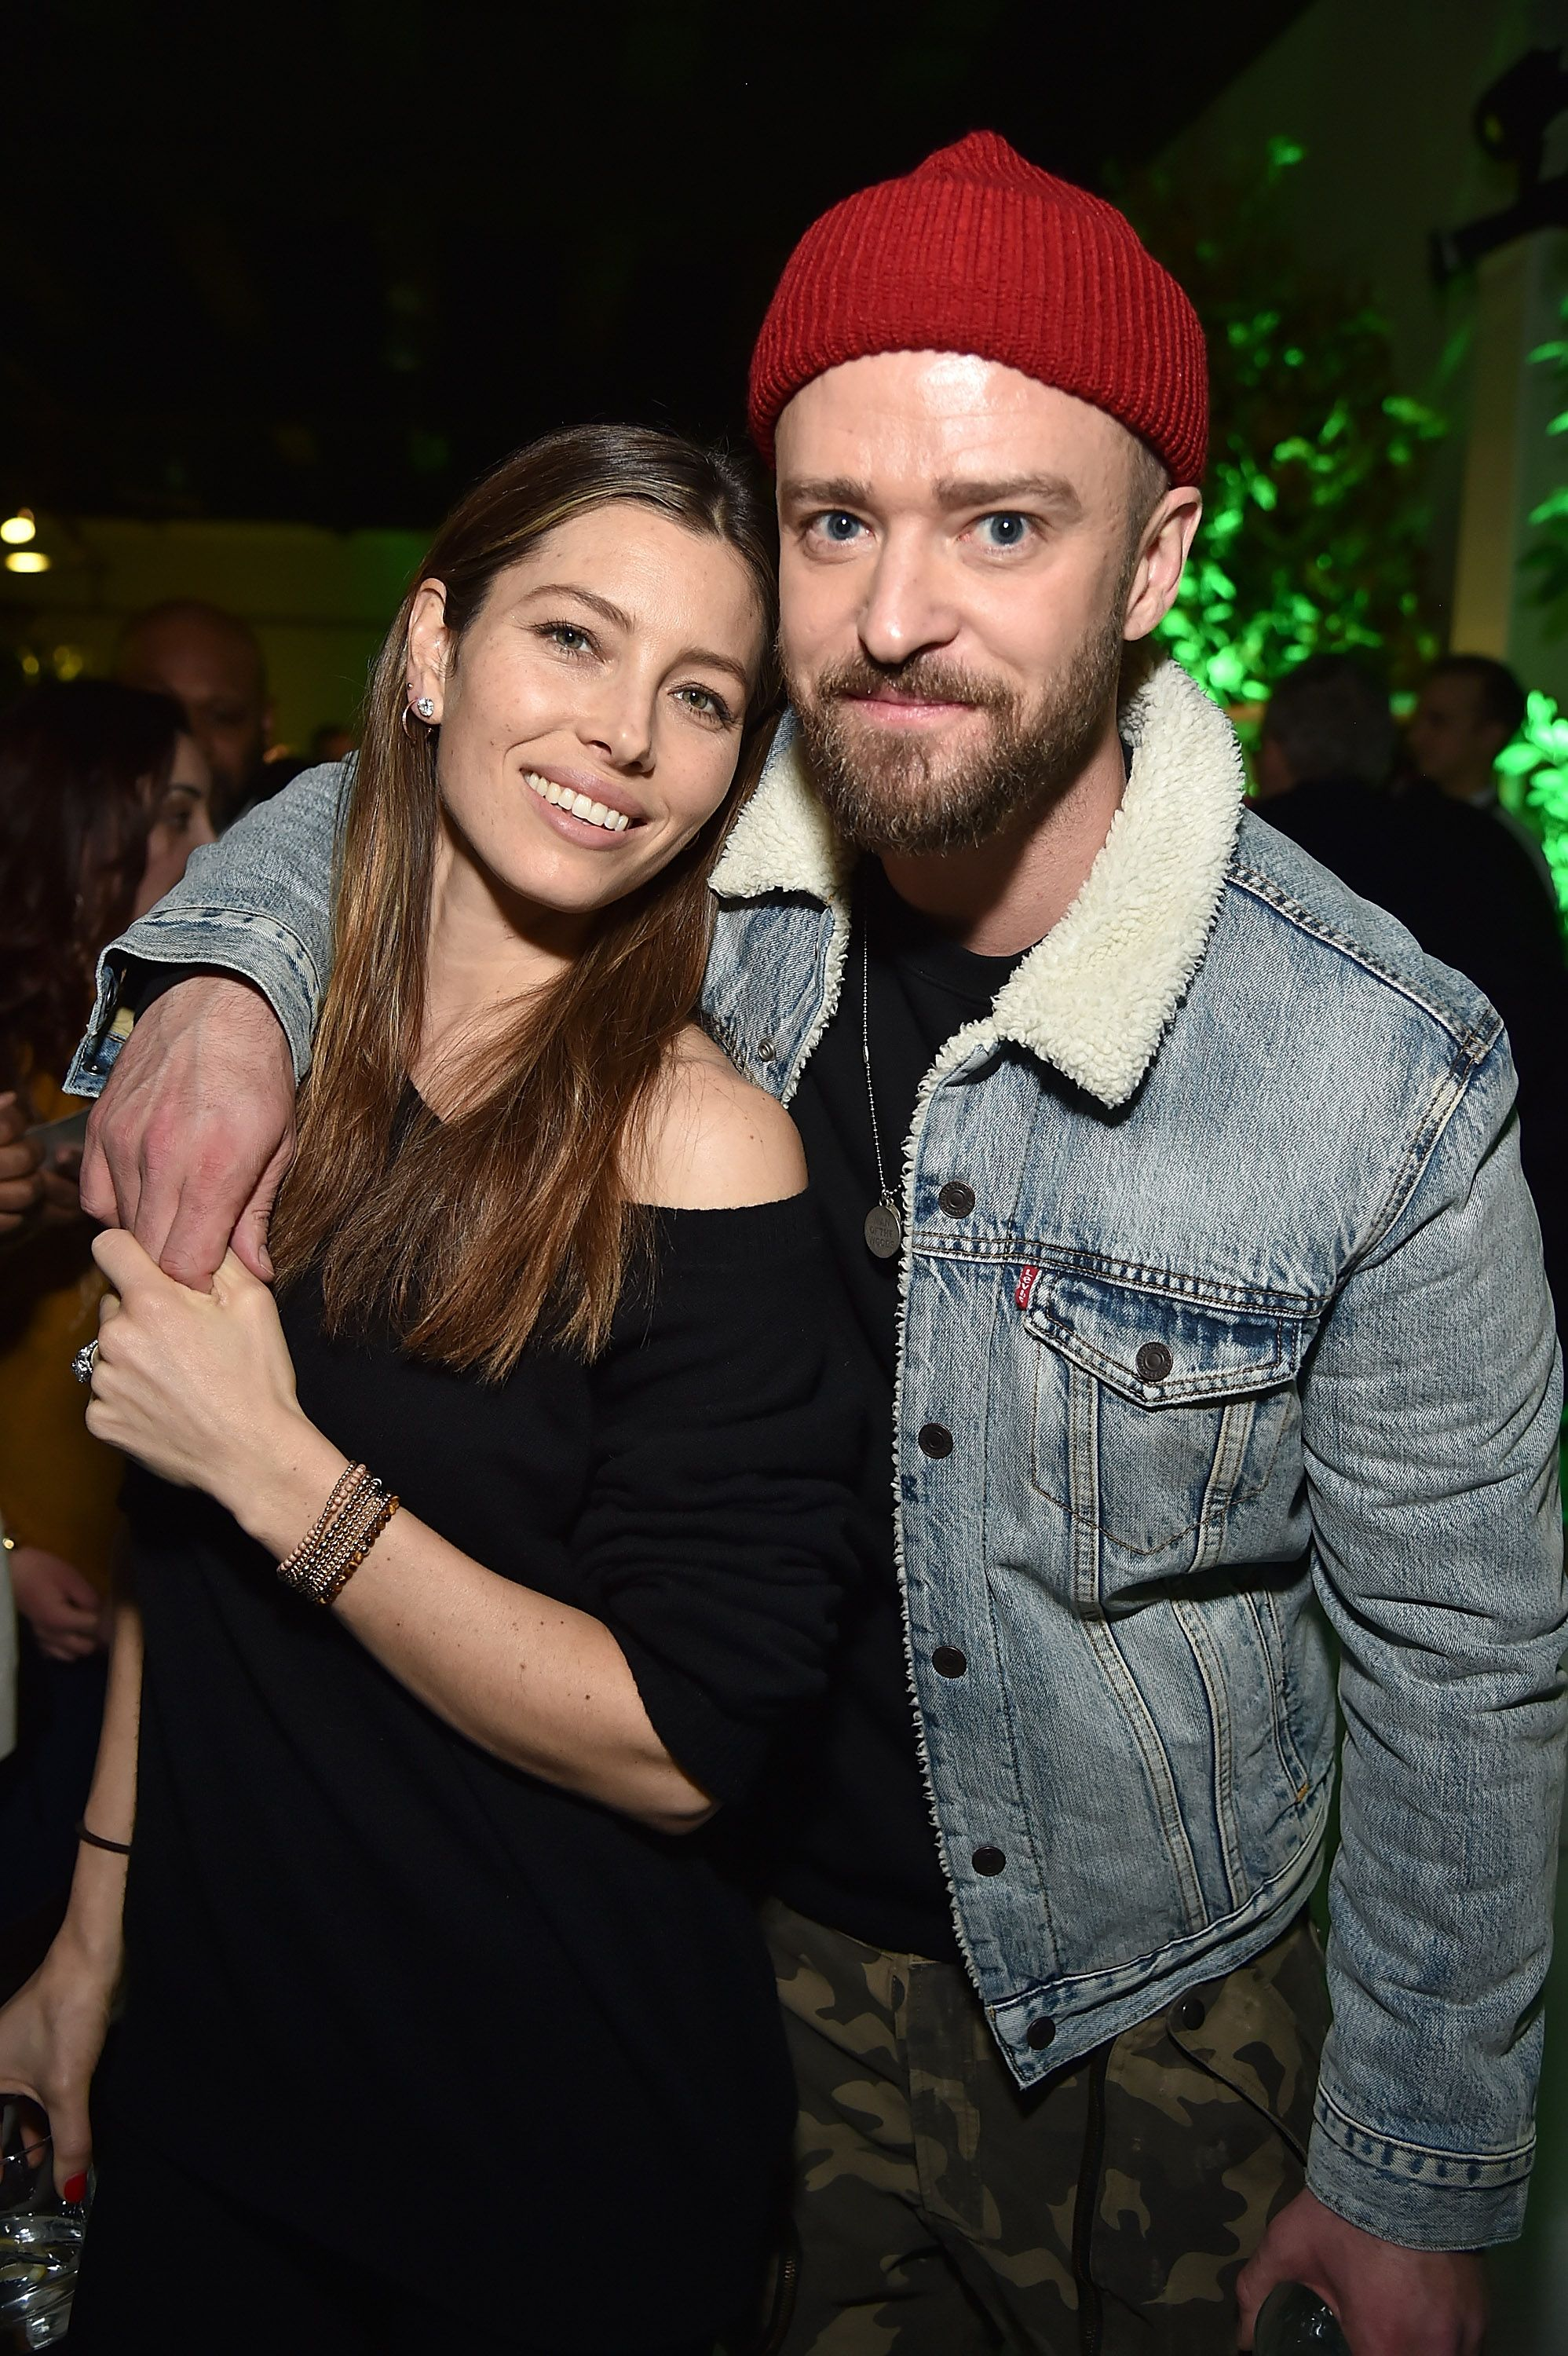 Justin Timberlake Apologises To Jessica Biel For 'Lapse In Judgement' After Pictures With Alisha Wainwright Surface